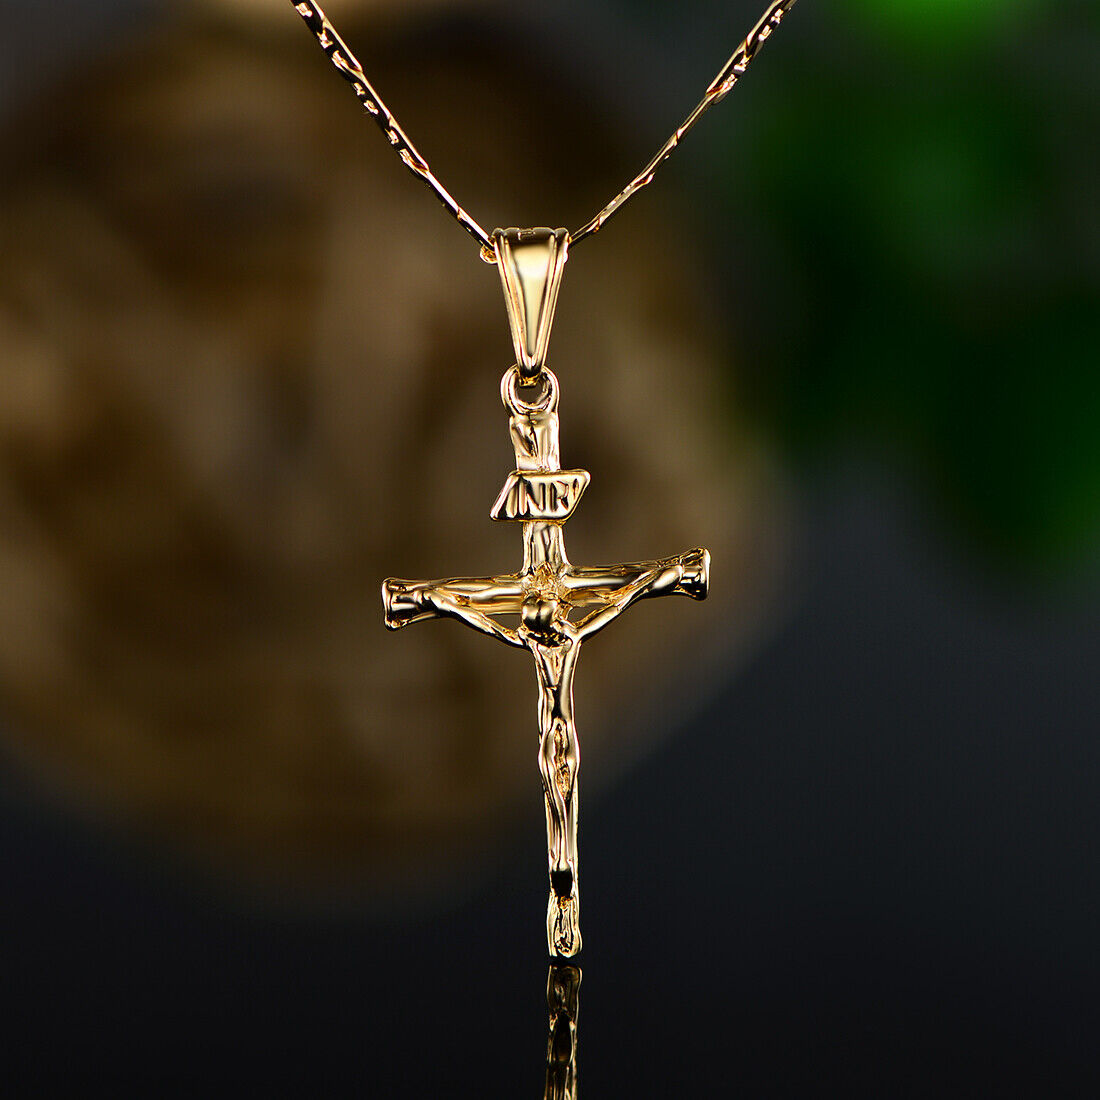 Jewellery - Sevil Unisex 18K Gold Plated Crucifix Pendant With Flat Marina Chain Necklace